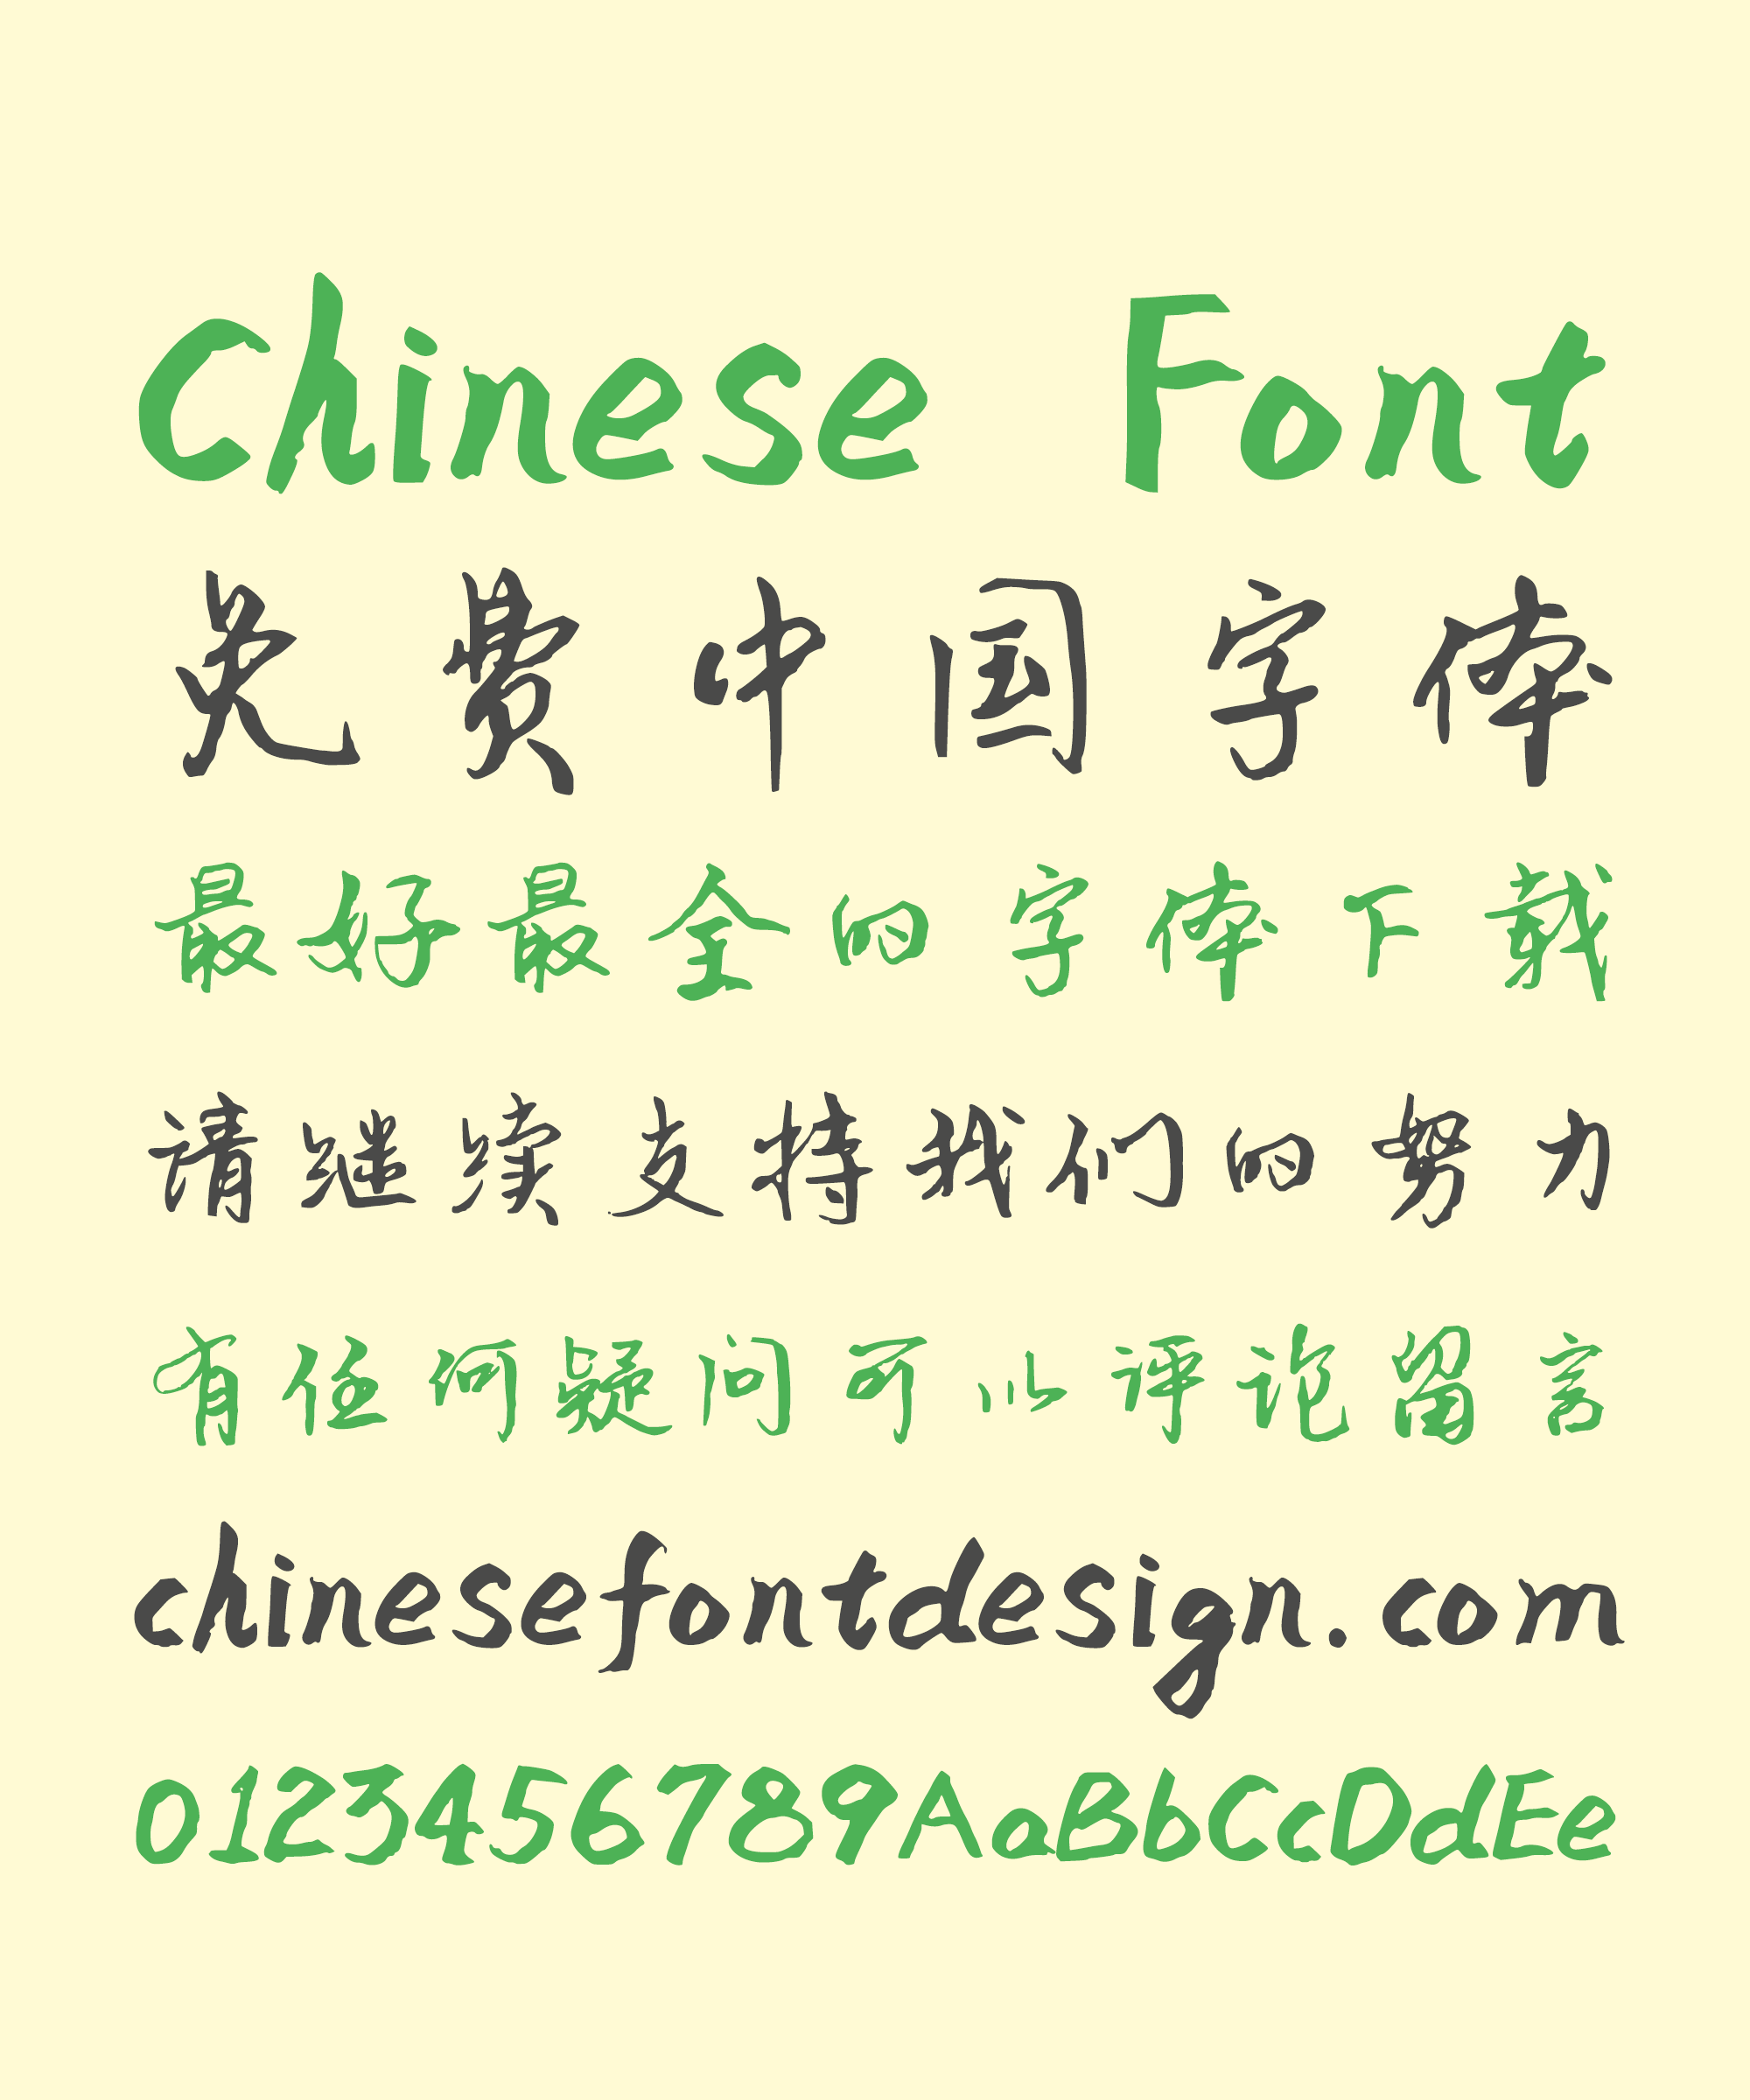 Fate (Running hand) Semi-Cursive Script Chinese -Simplified Chinese Fonts